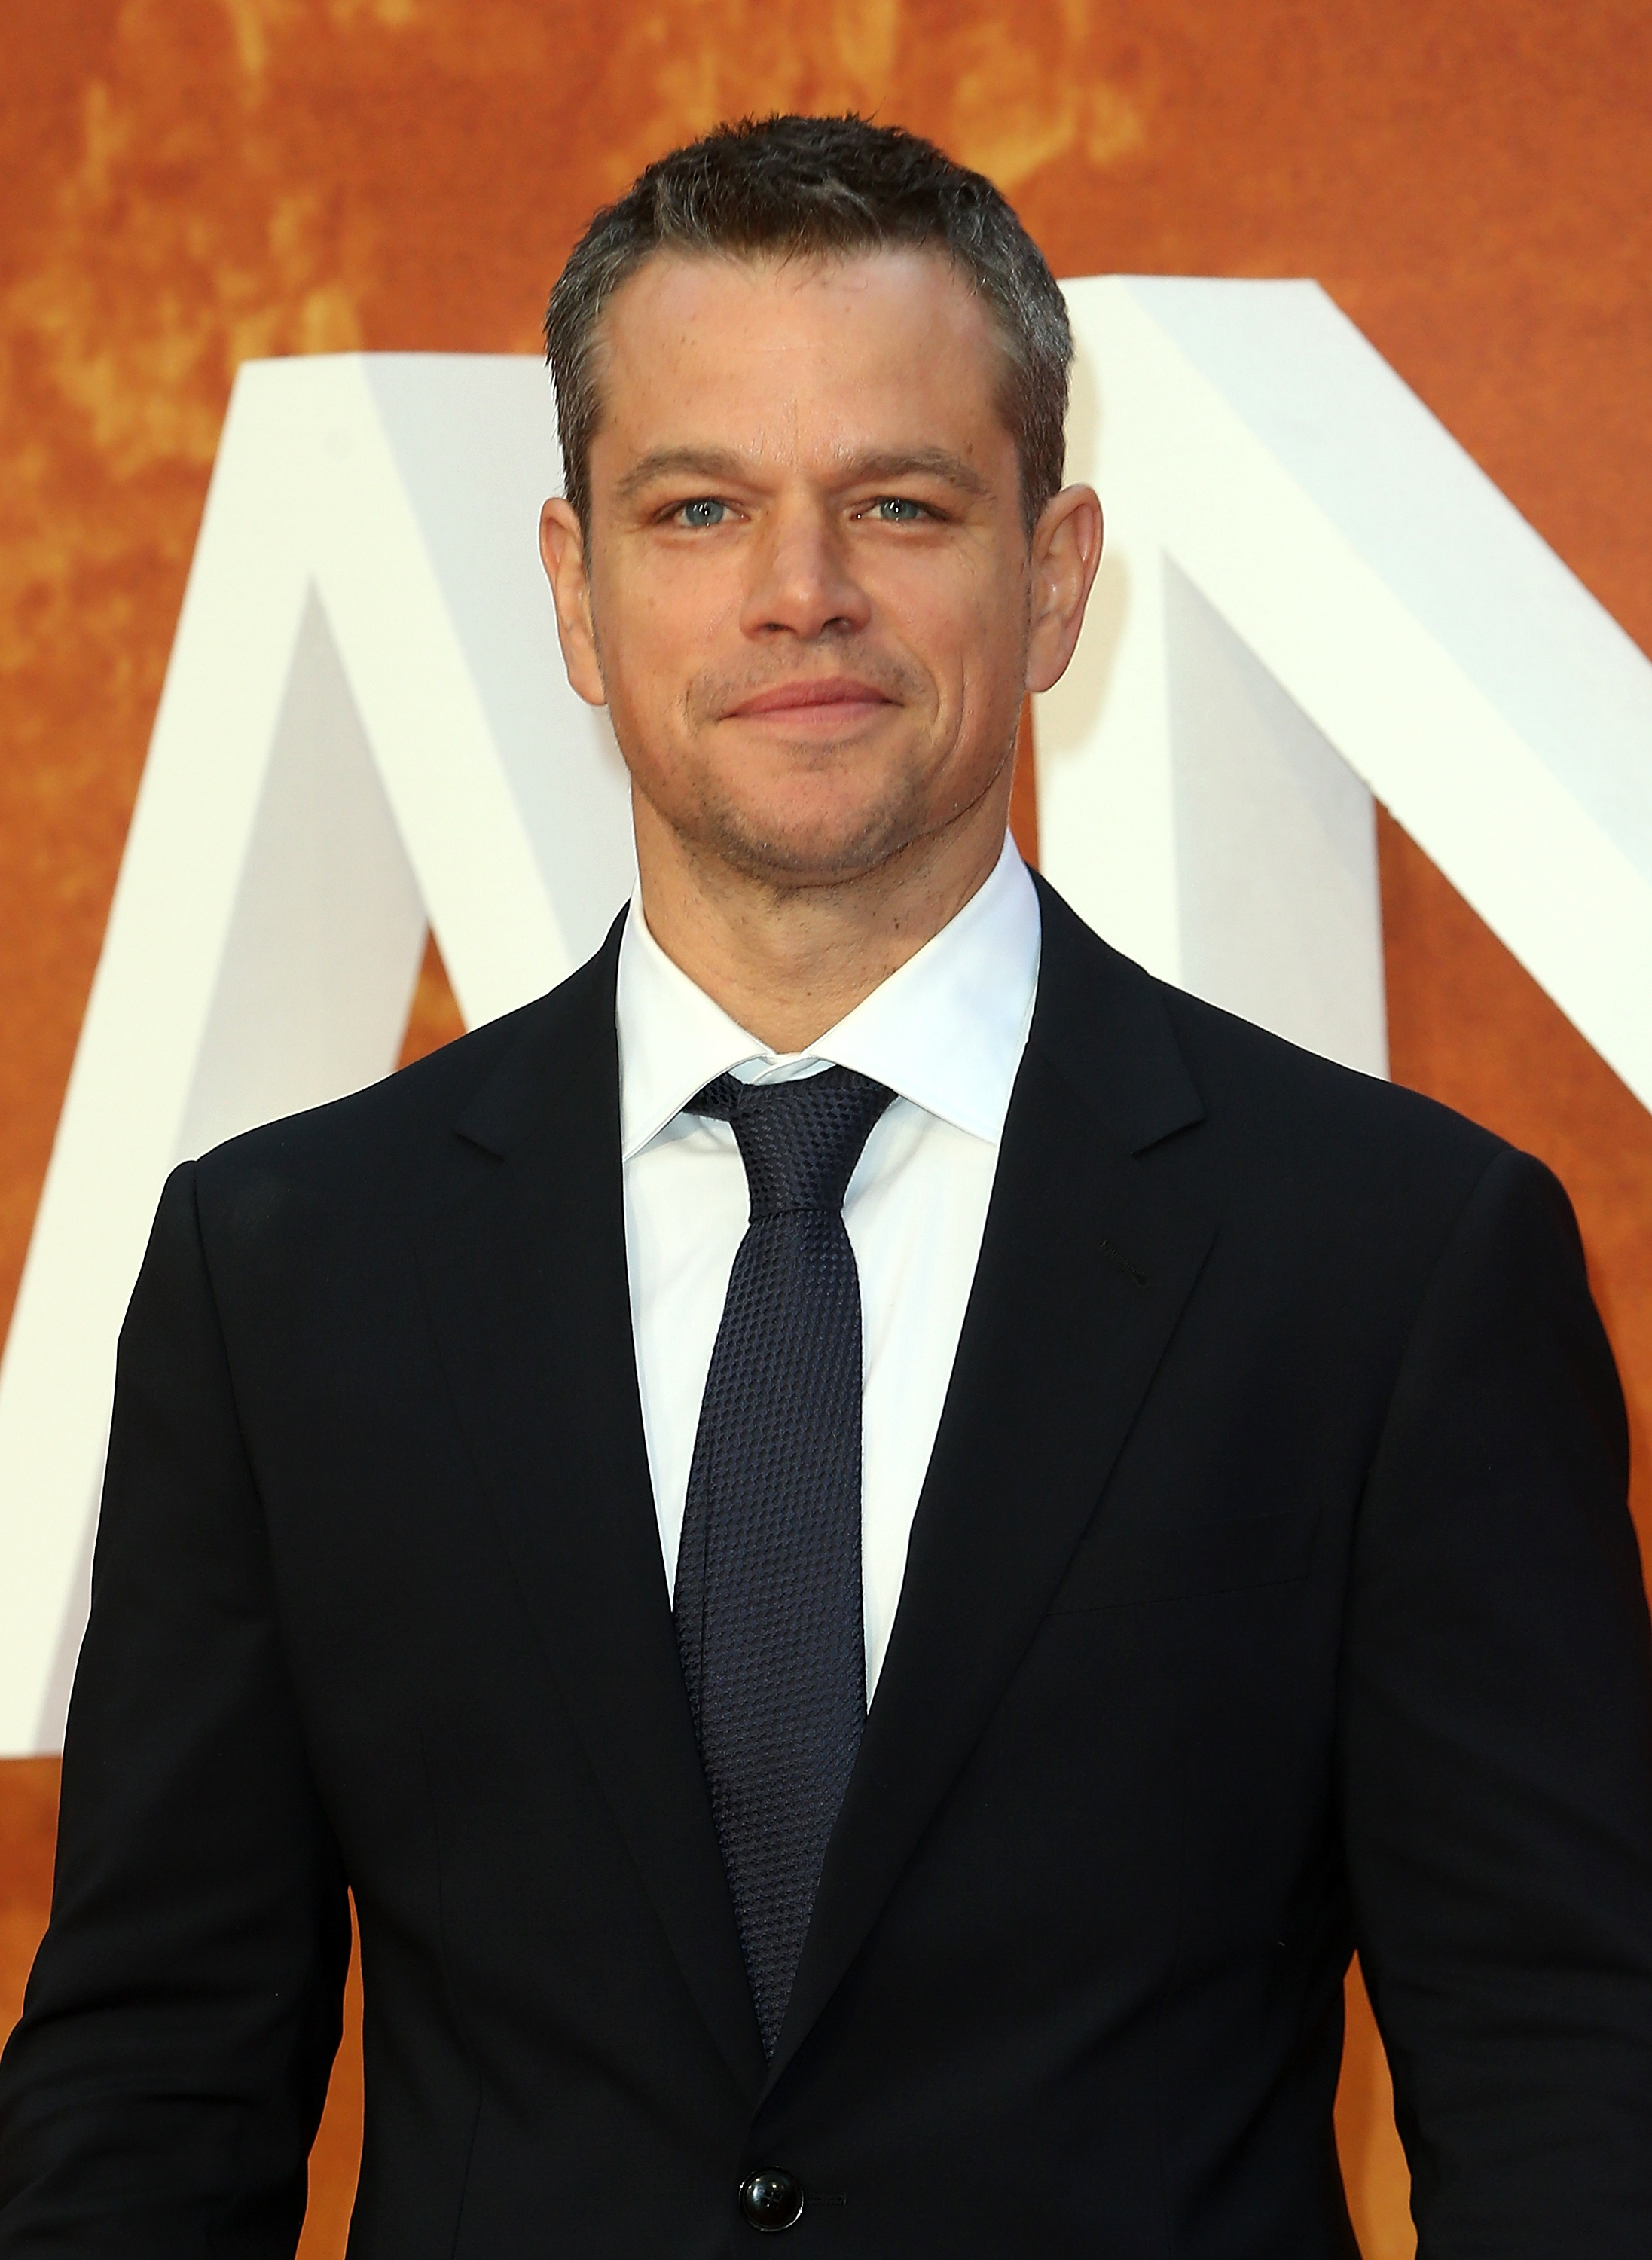 Matt Damon attends the European premiere of  The Martian  at Odeon Leicester Square on September 24, 2015 in London, England.